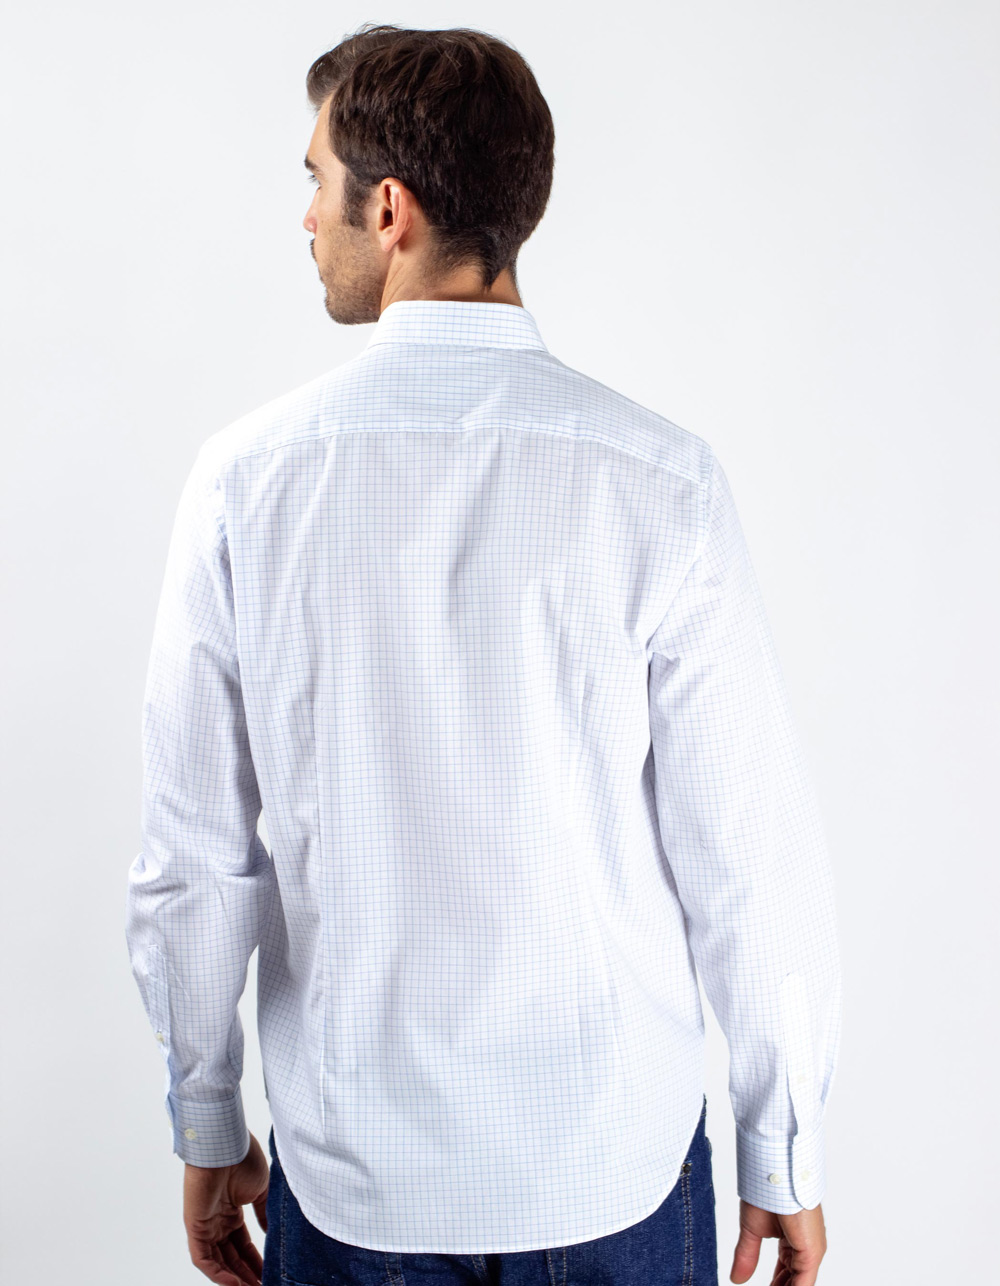 Long sleeve checkered shirt - Backside